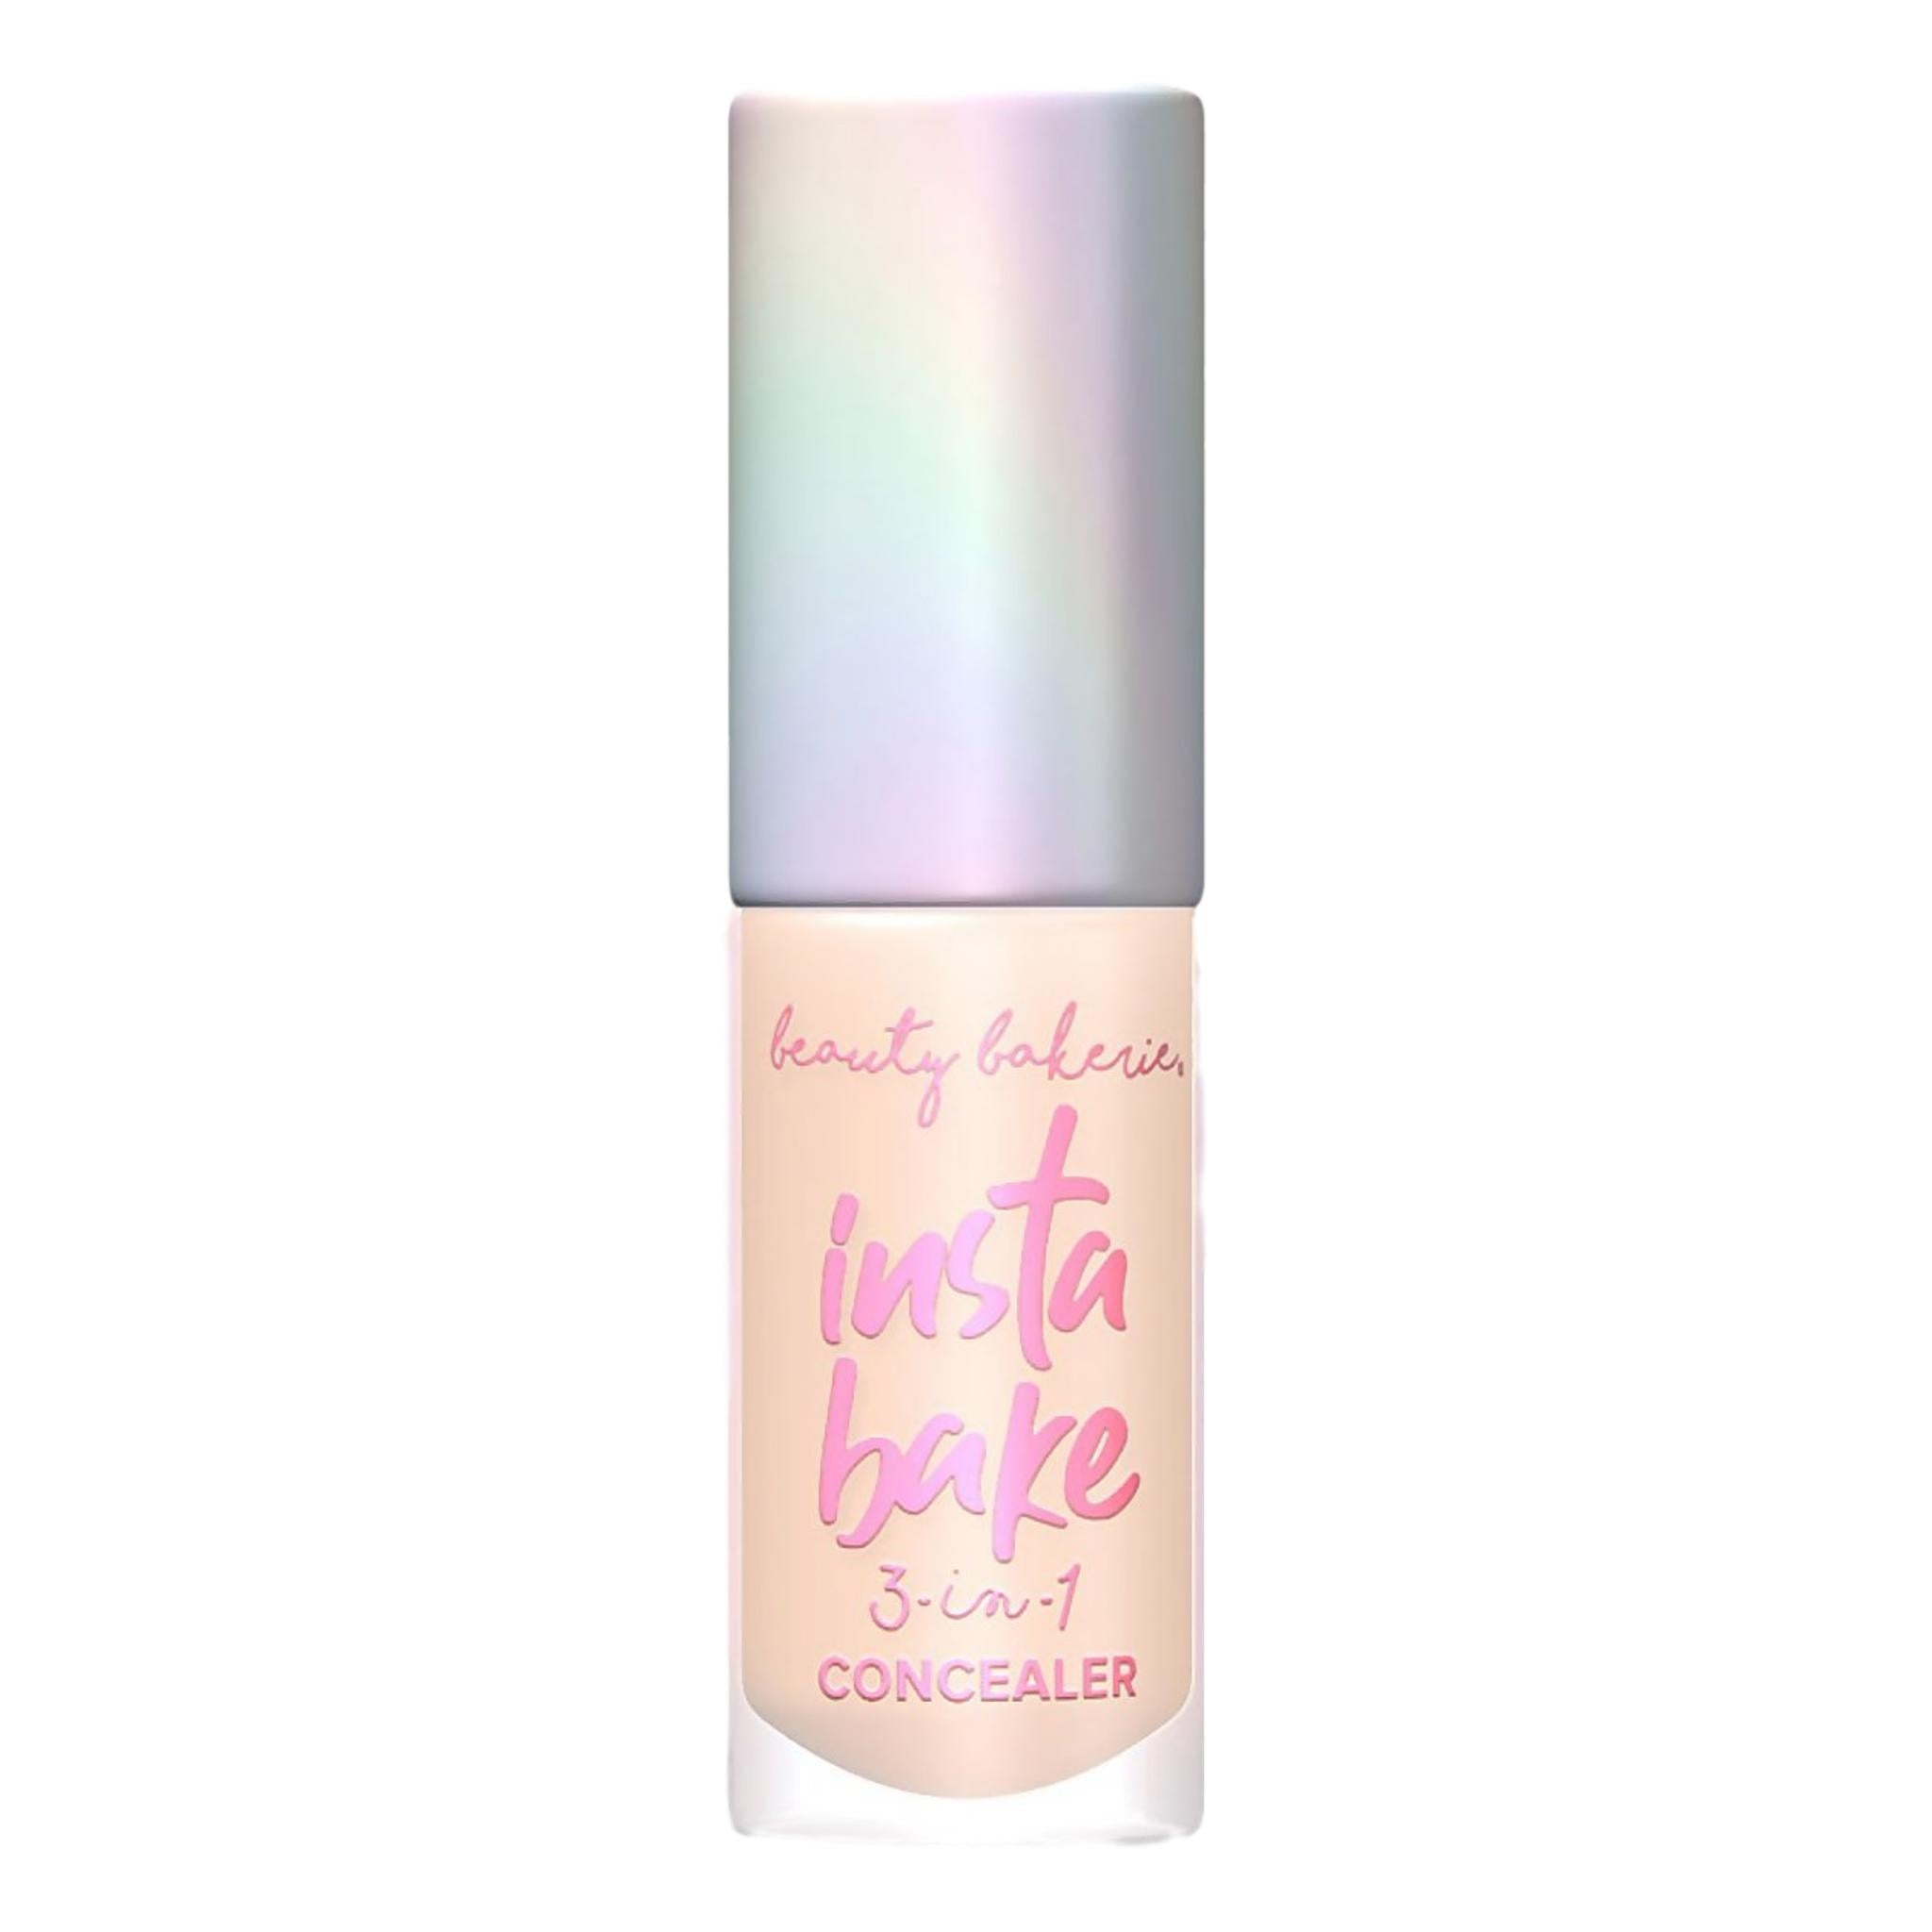 BEAUTY BAKERIE InstaBake 3-in-1 Hydrating Concealer, Concealer, London Loves Beauty